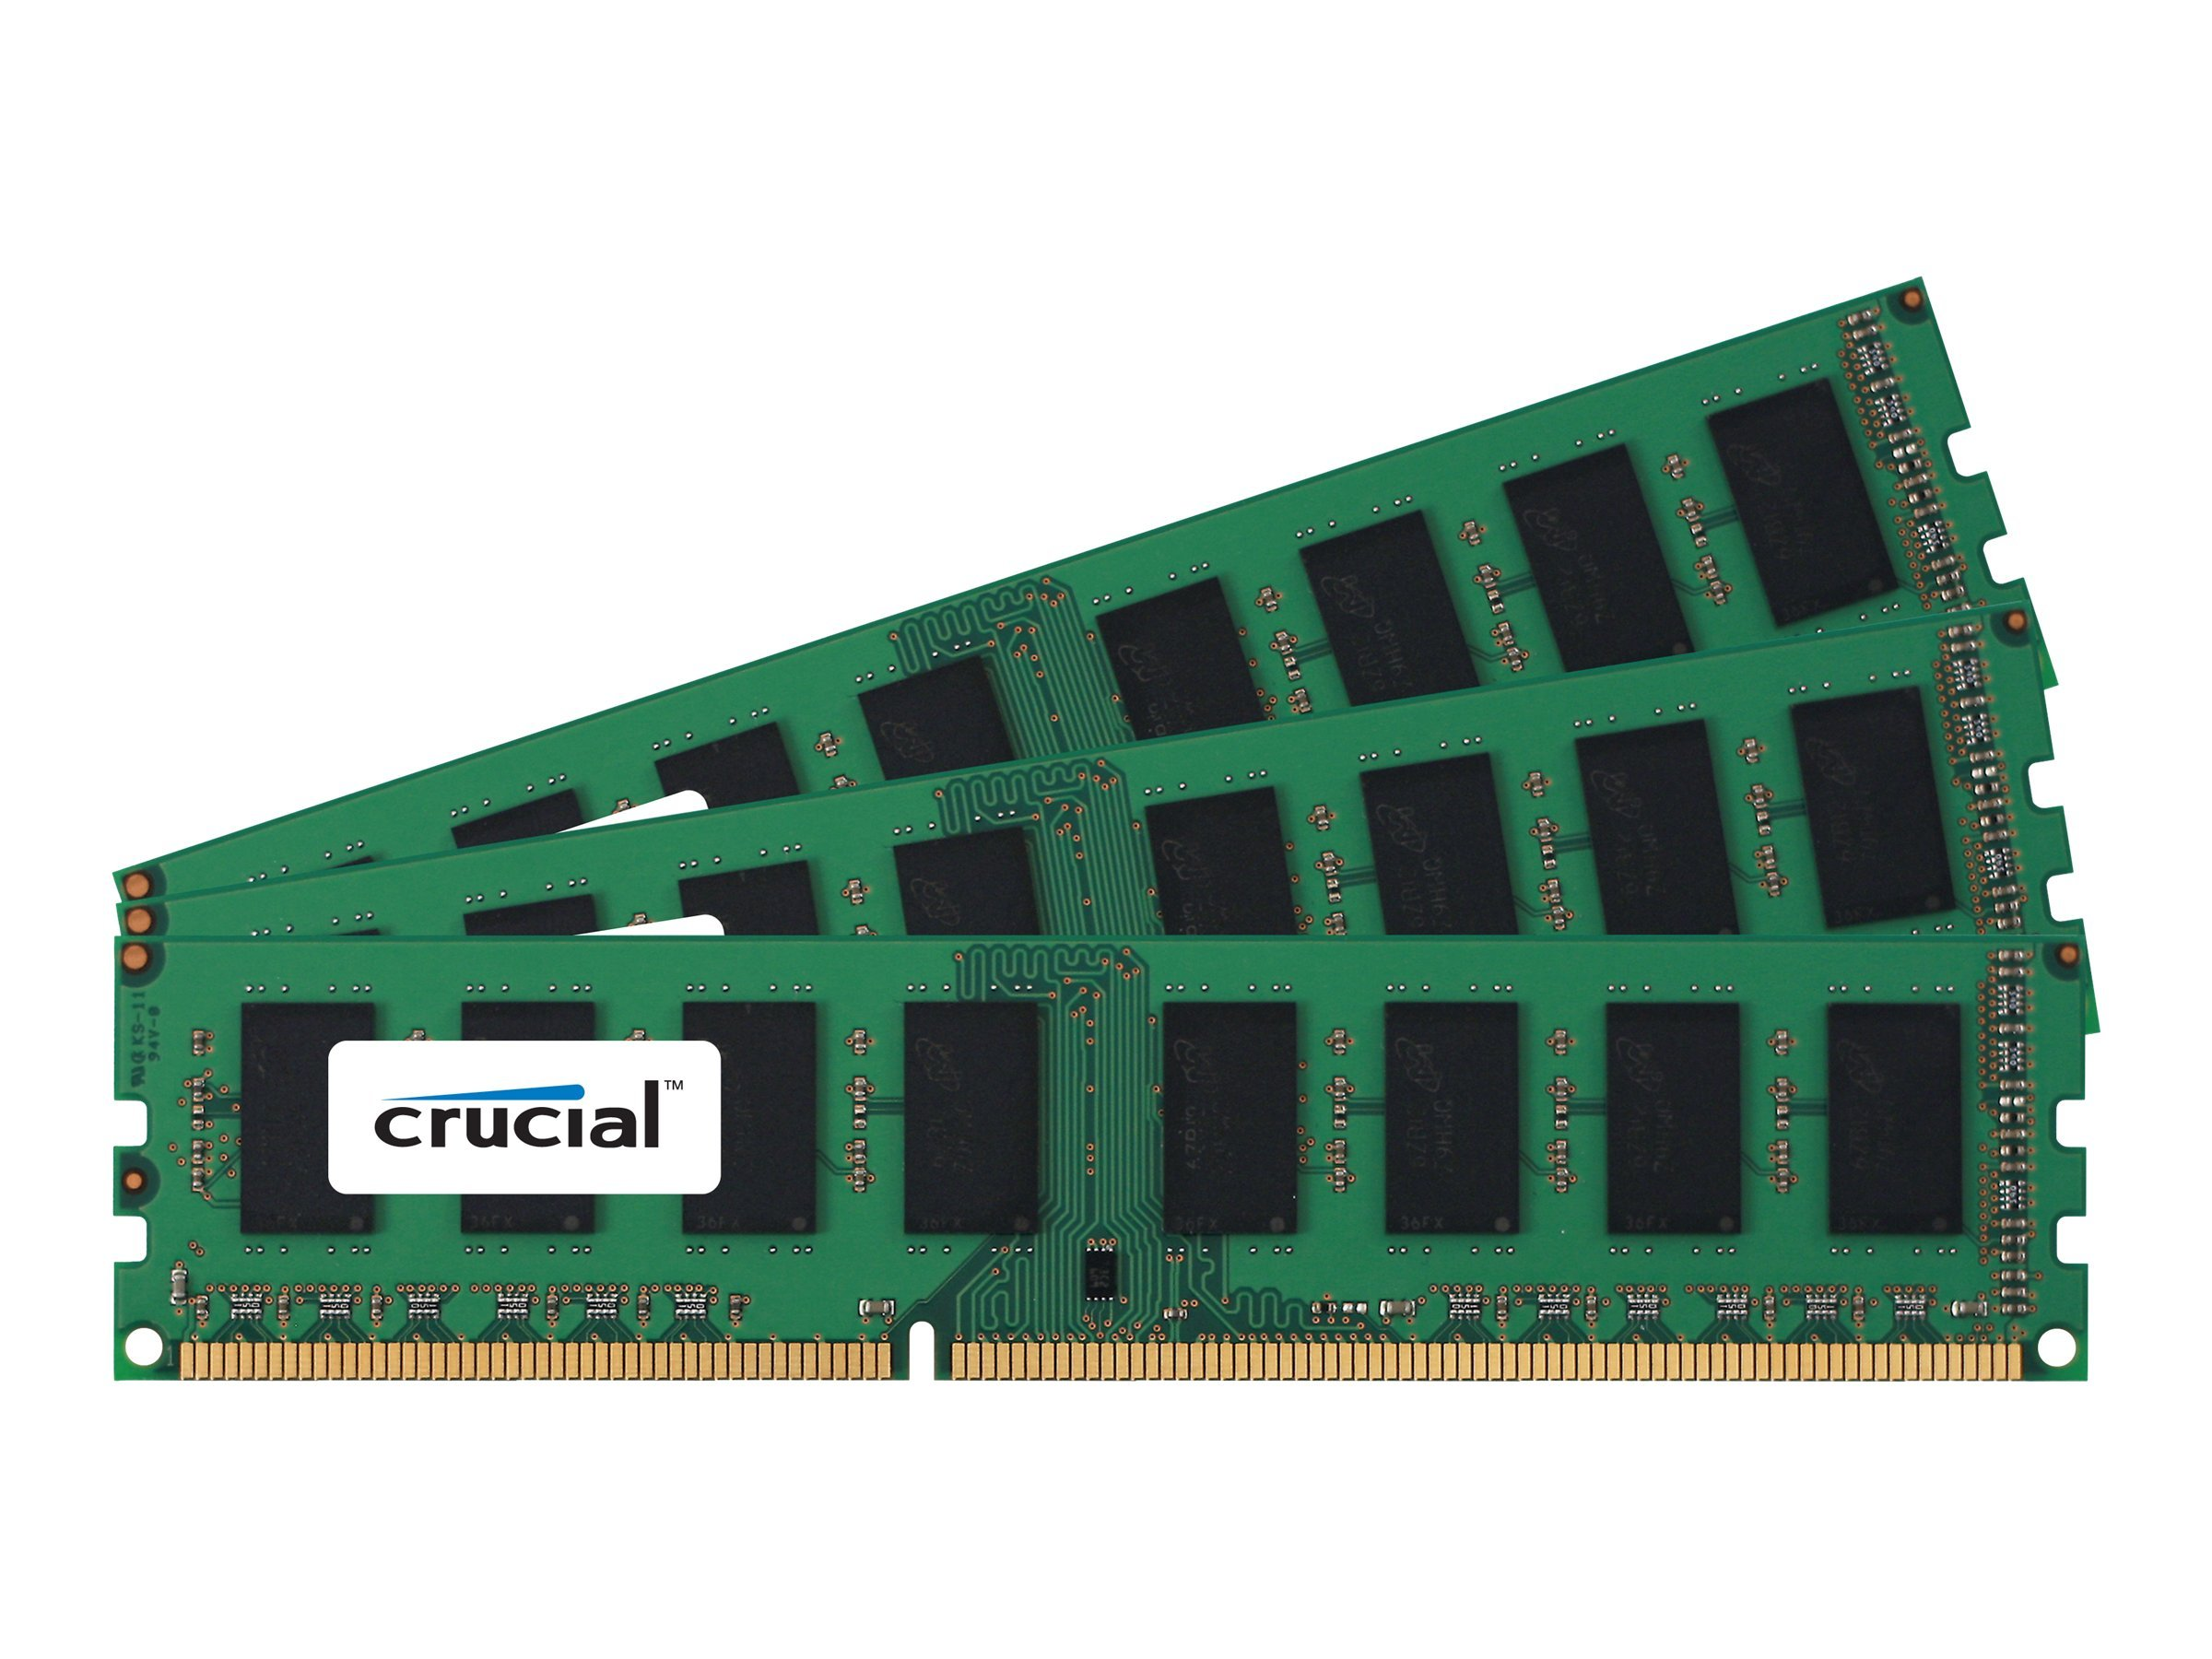 Crucial 12GB PC3-8500 240-pin DDR3 SDRAM DIMM Kit, CT3KIT51272BA1067, 11469234, Memory